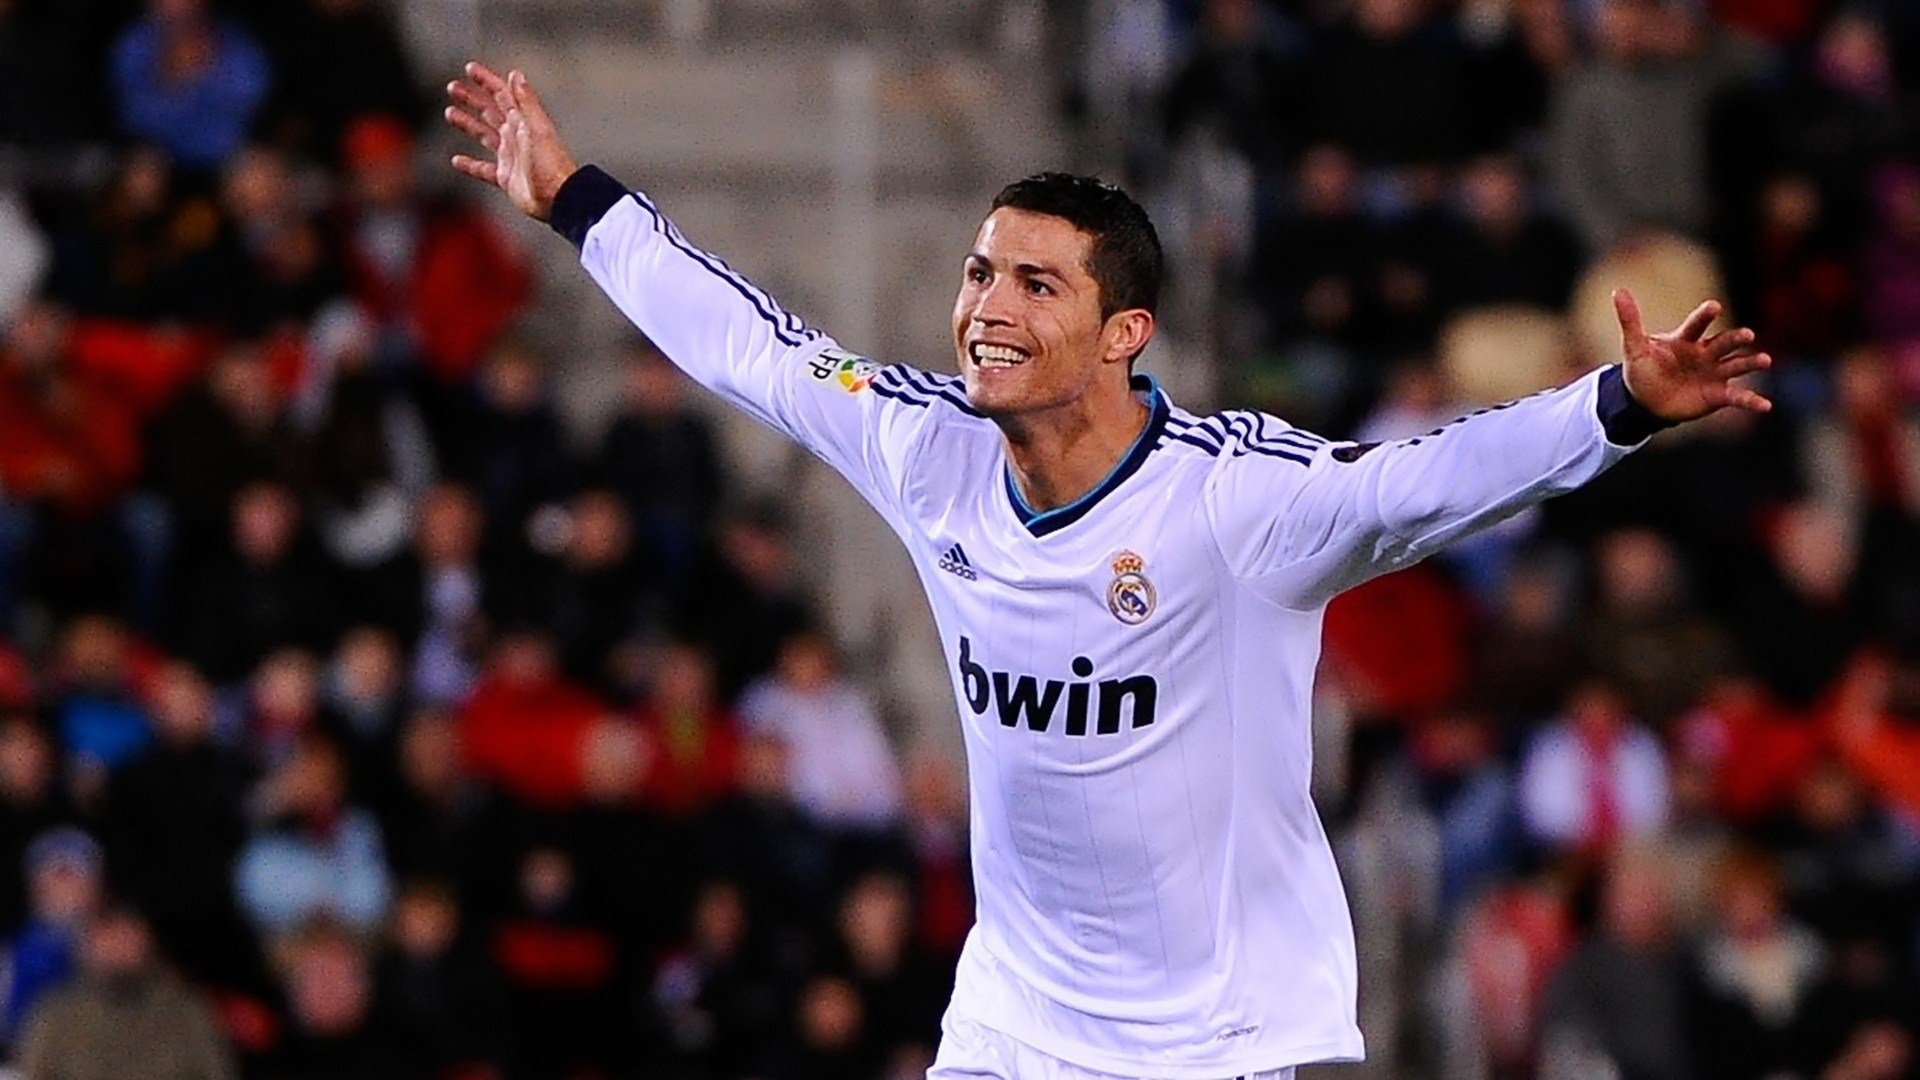 78 cristiano ronaldo hd wallpapers | background images - wallpaper